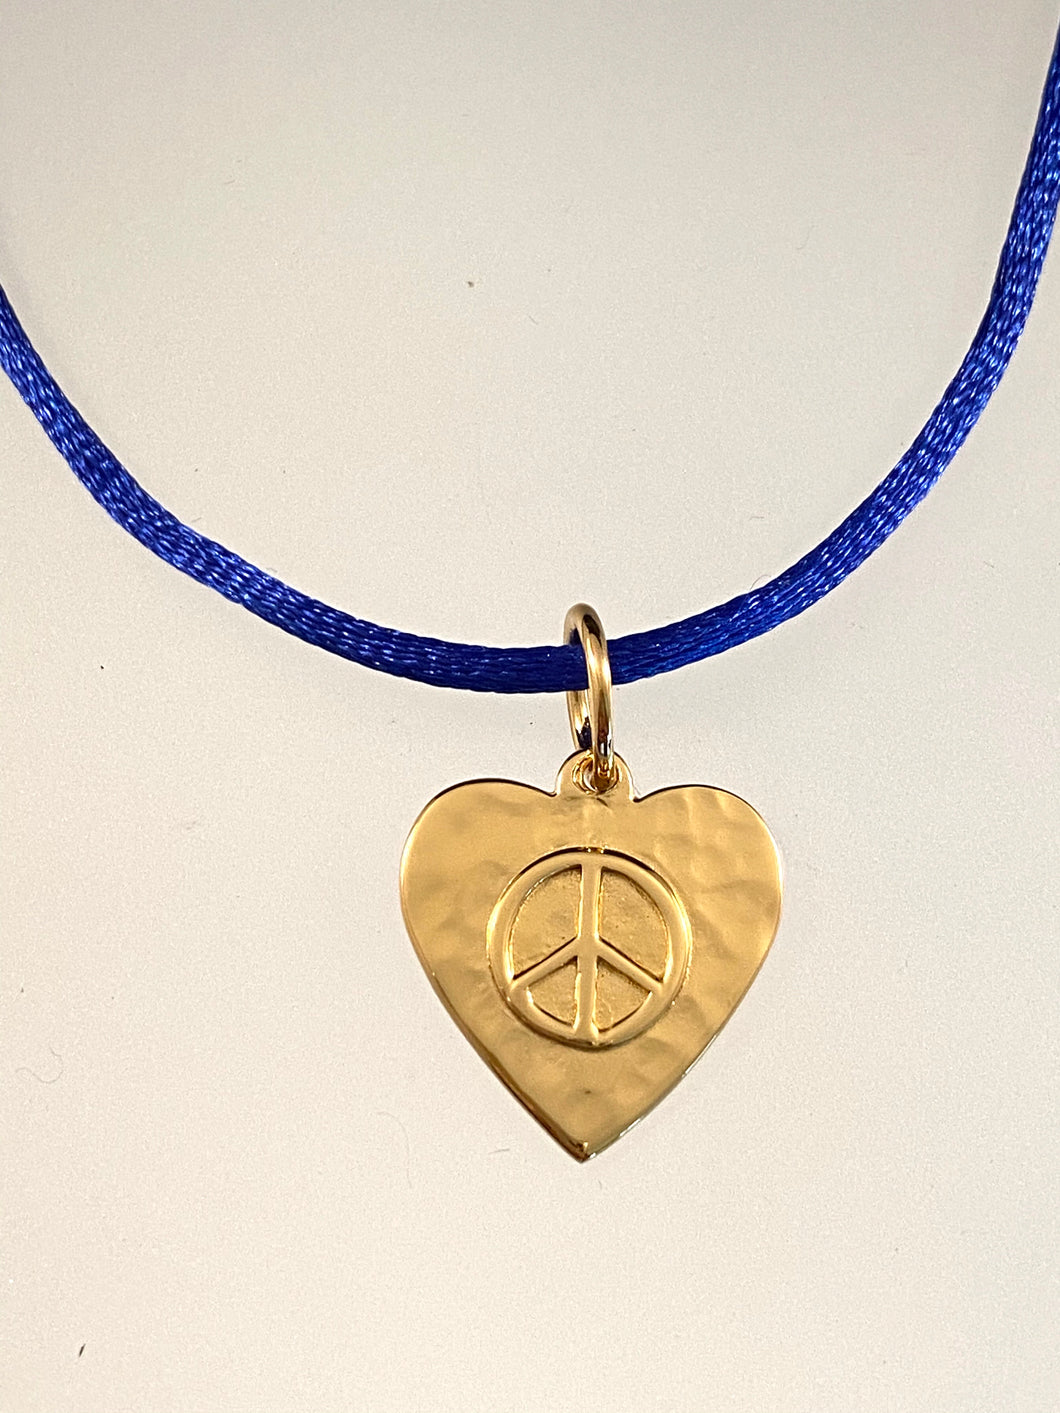 Yellow Gold Peace Heart on Royal Blue Satin Cord